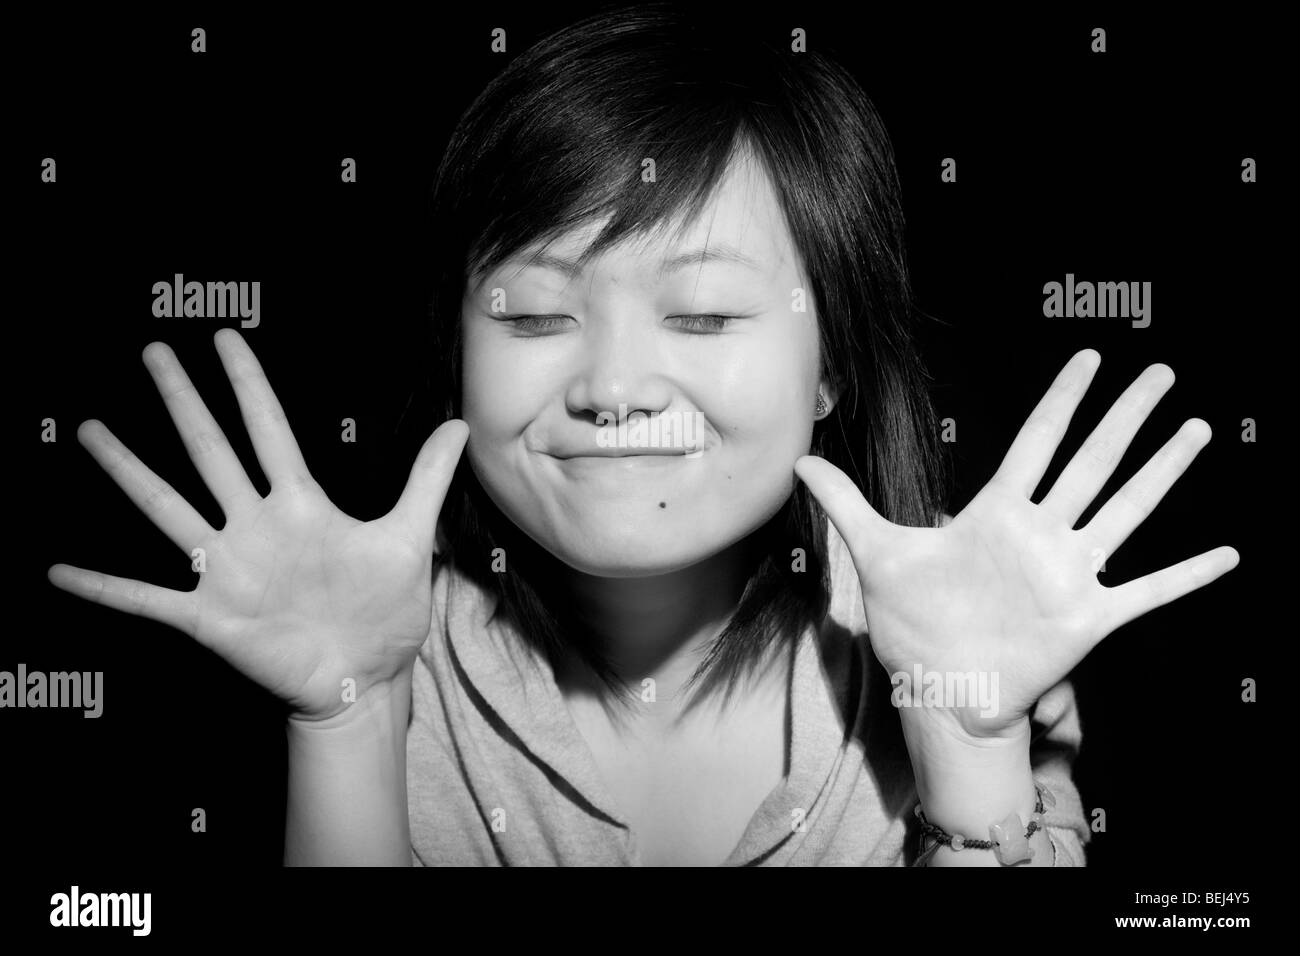 Young Asian woman with a happy open handed gesture. - Stock Image